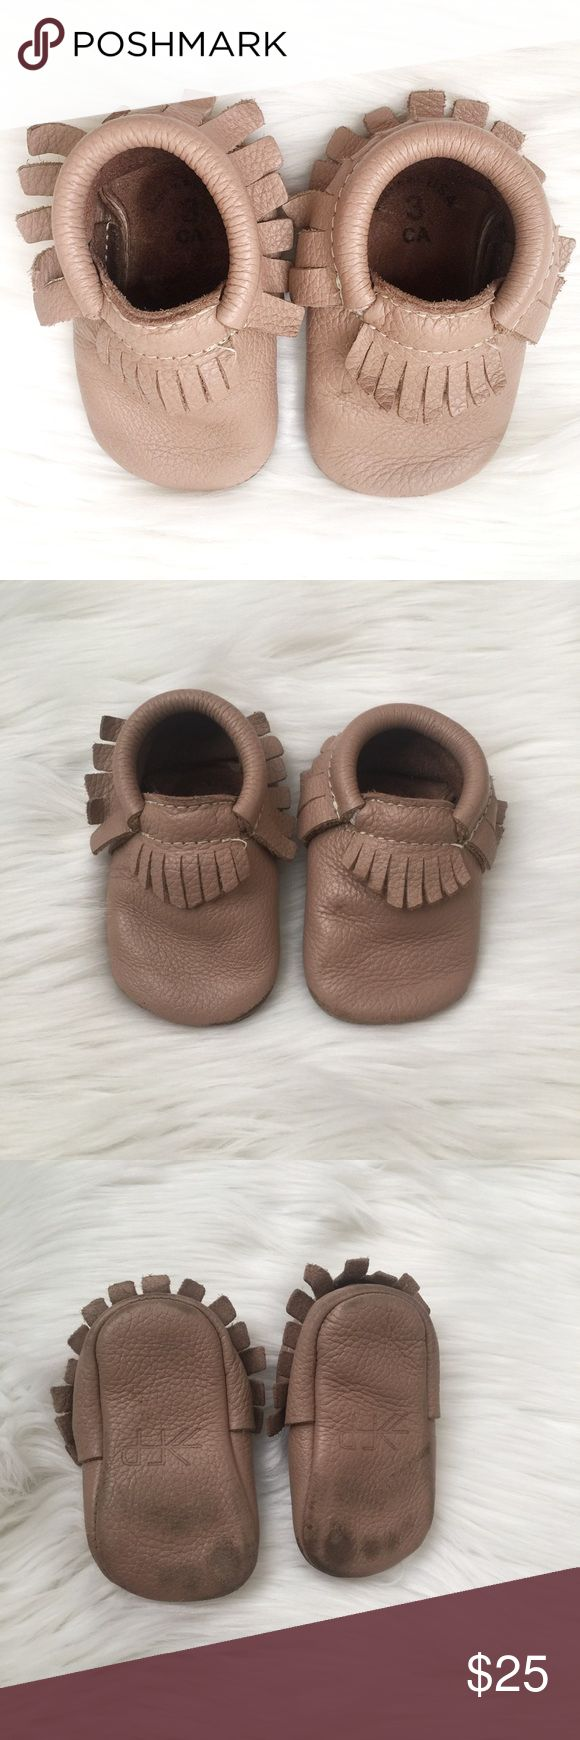 Freshly picked brown size 3 baby moccasins These moccasins are in great condition. Little bit of wear on the bottom, but still in perfect functioning order. Feel free to mark me an offer or bundle for 10% off! Freshly Picked Shoes Moccasins